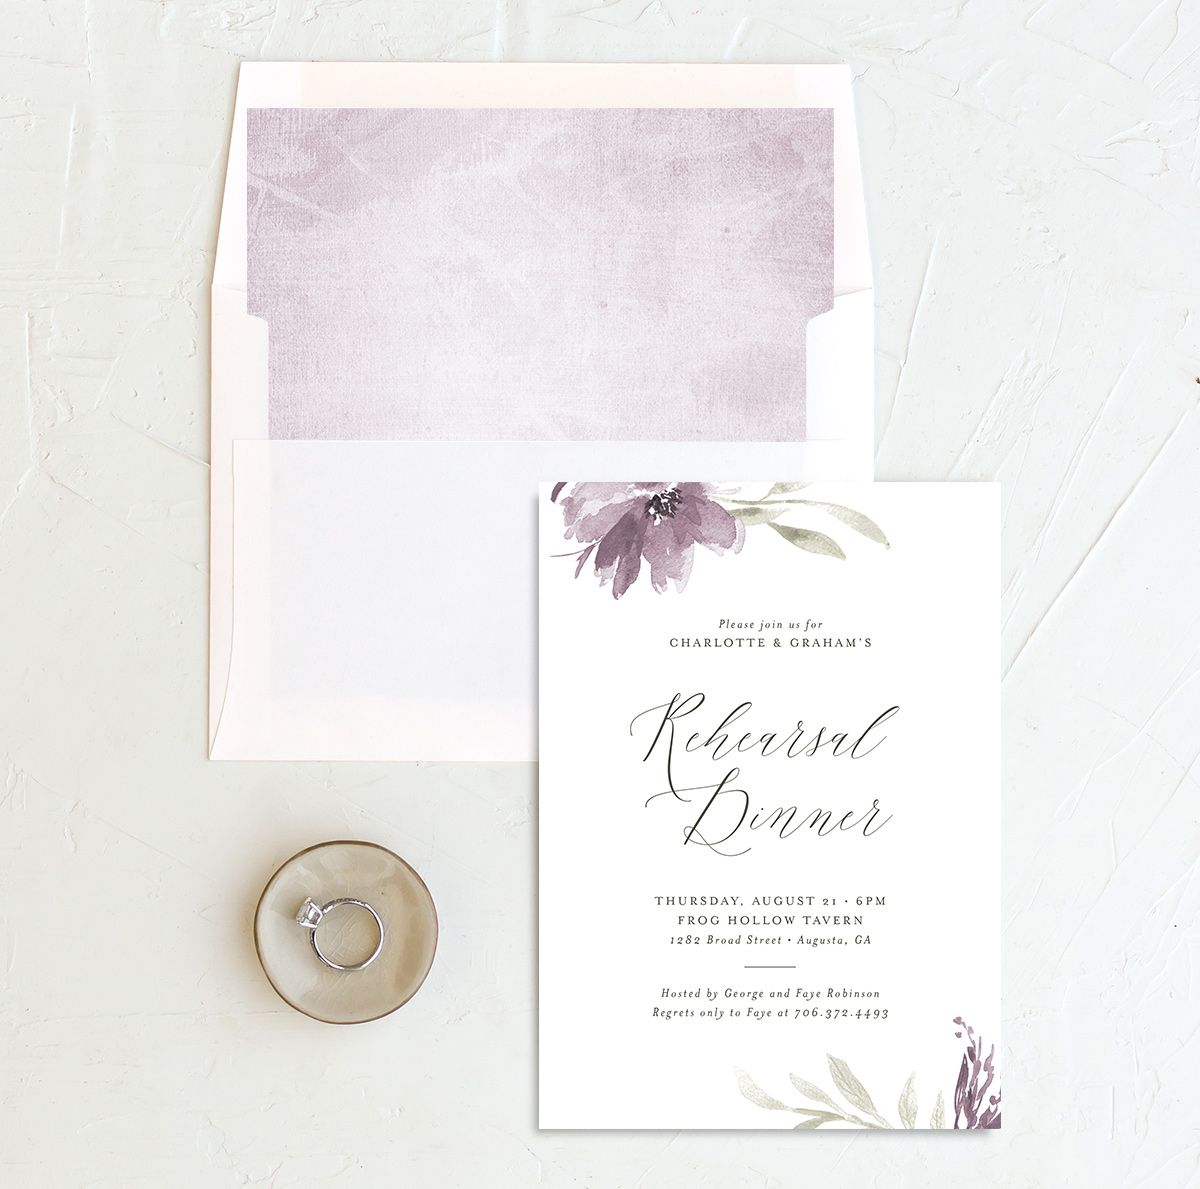 Muted floral rehearsal dinner invitations in purple and envelope liners